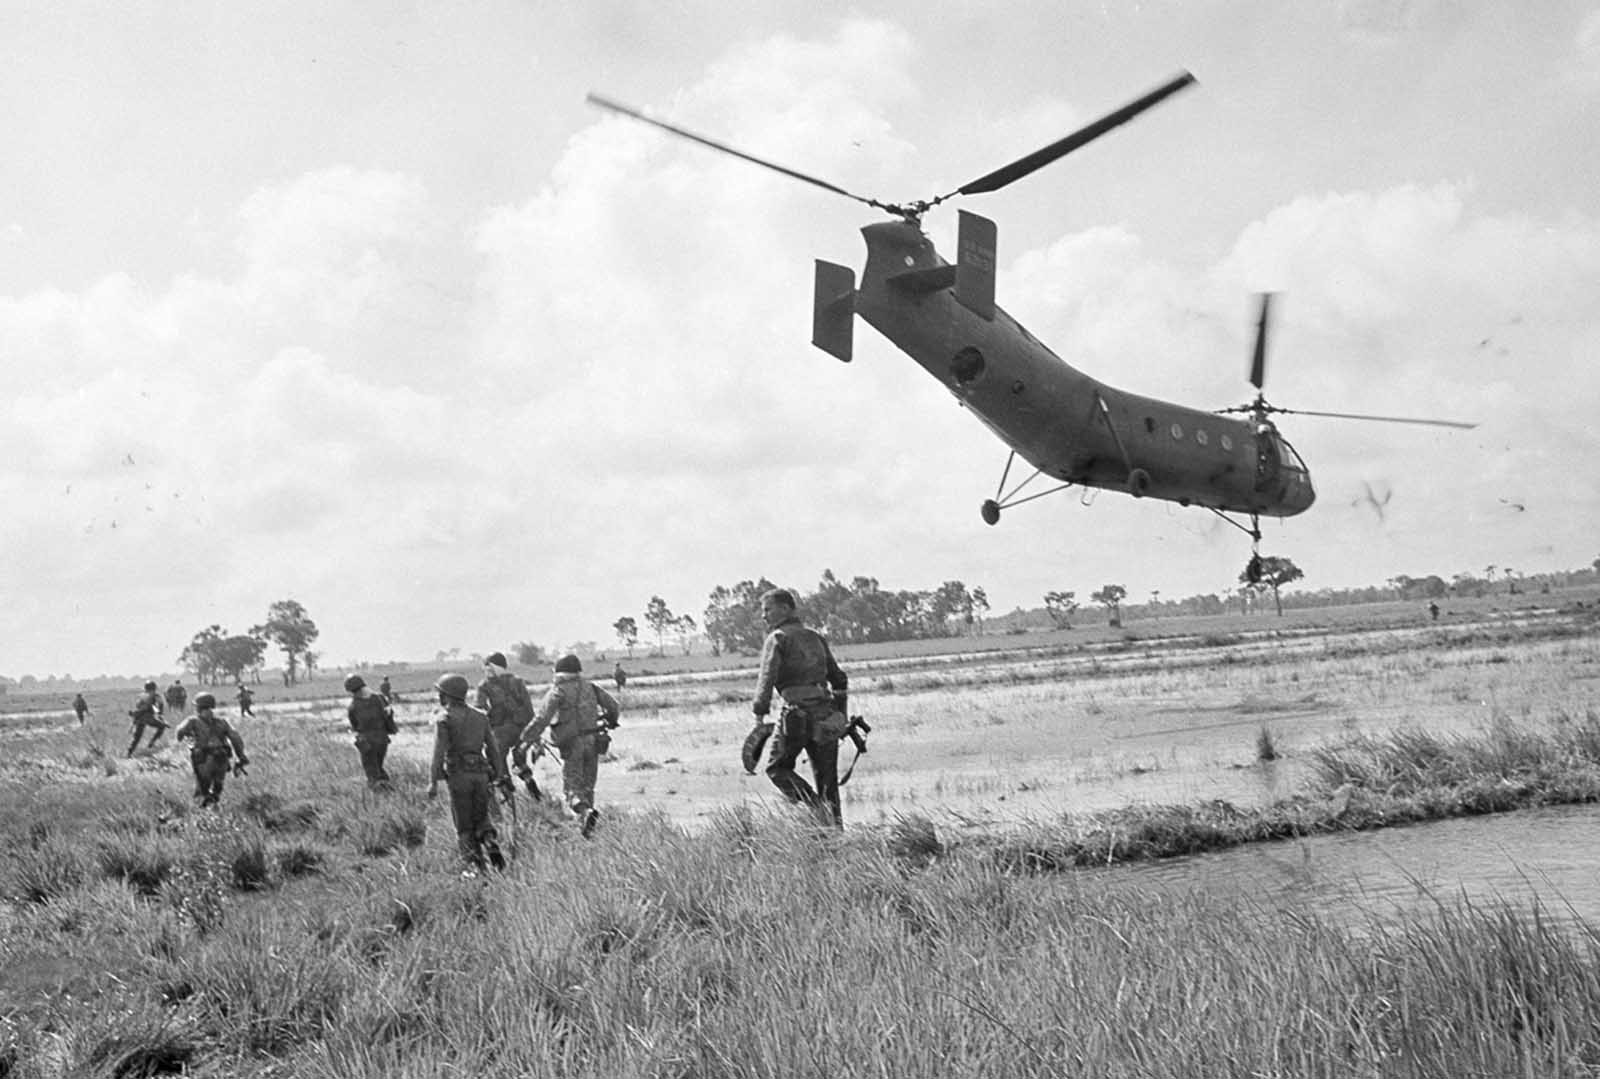 Vietnamese airborne rangers, their two U.S. advisers, and a team of 12 U.S. Special Forces troops set out to raid a Viet Cong supply base 62 miles northwest of Saigon, on August 6, 1963. As the H-21 helicopters hovered six feet from the ground to avoid spikes and wires and under sniper fire, the troops jumped out to attack.